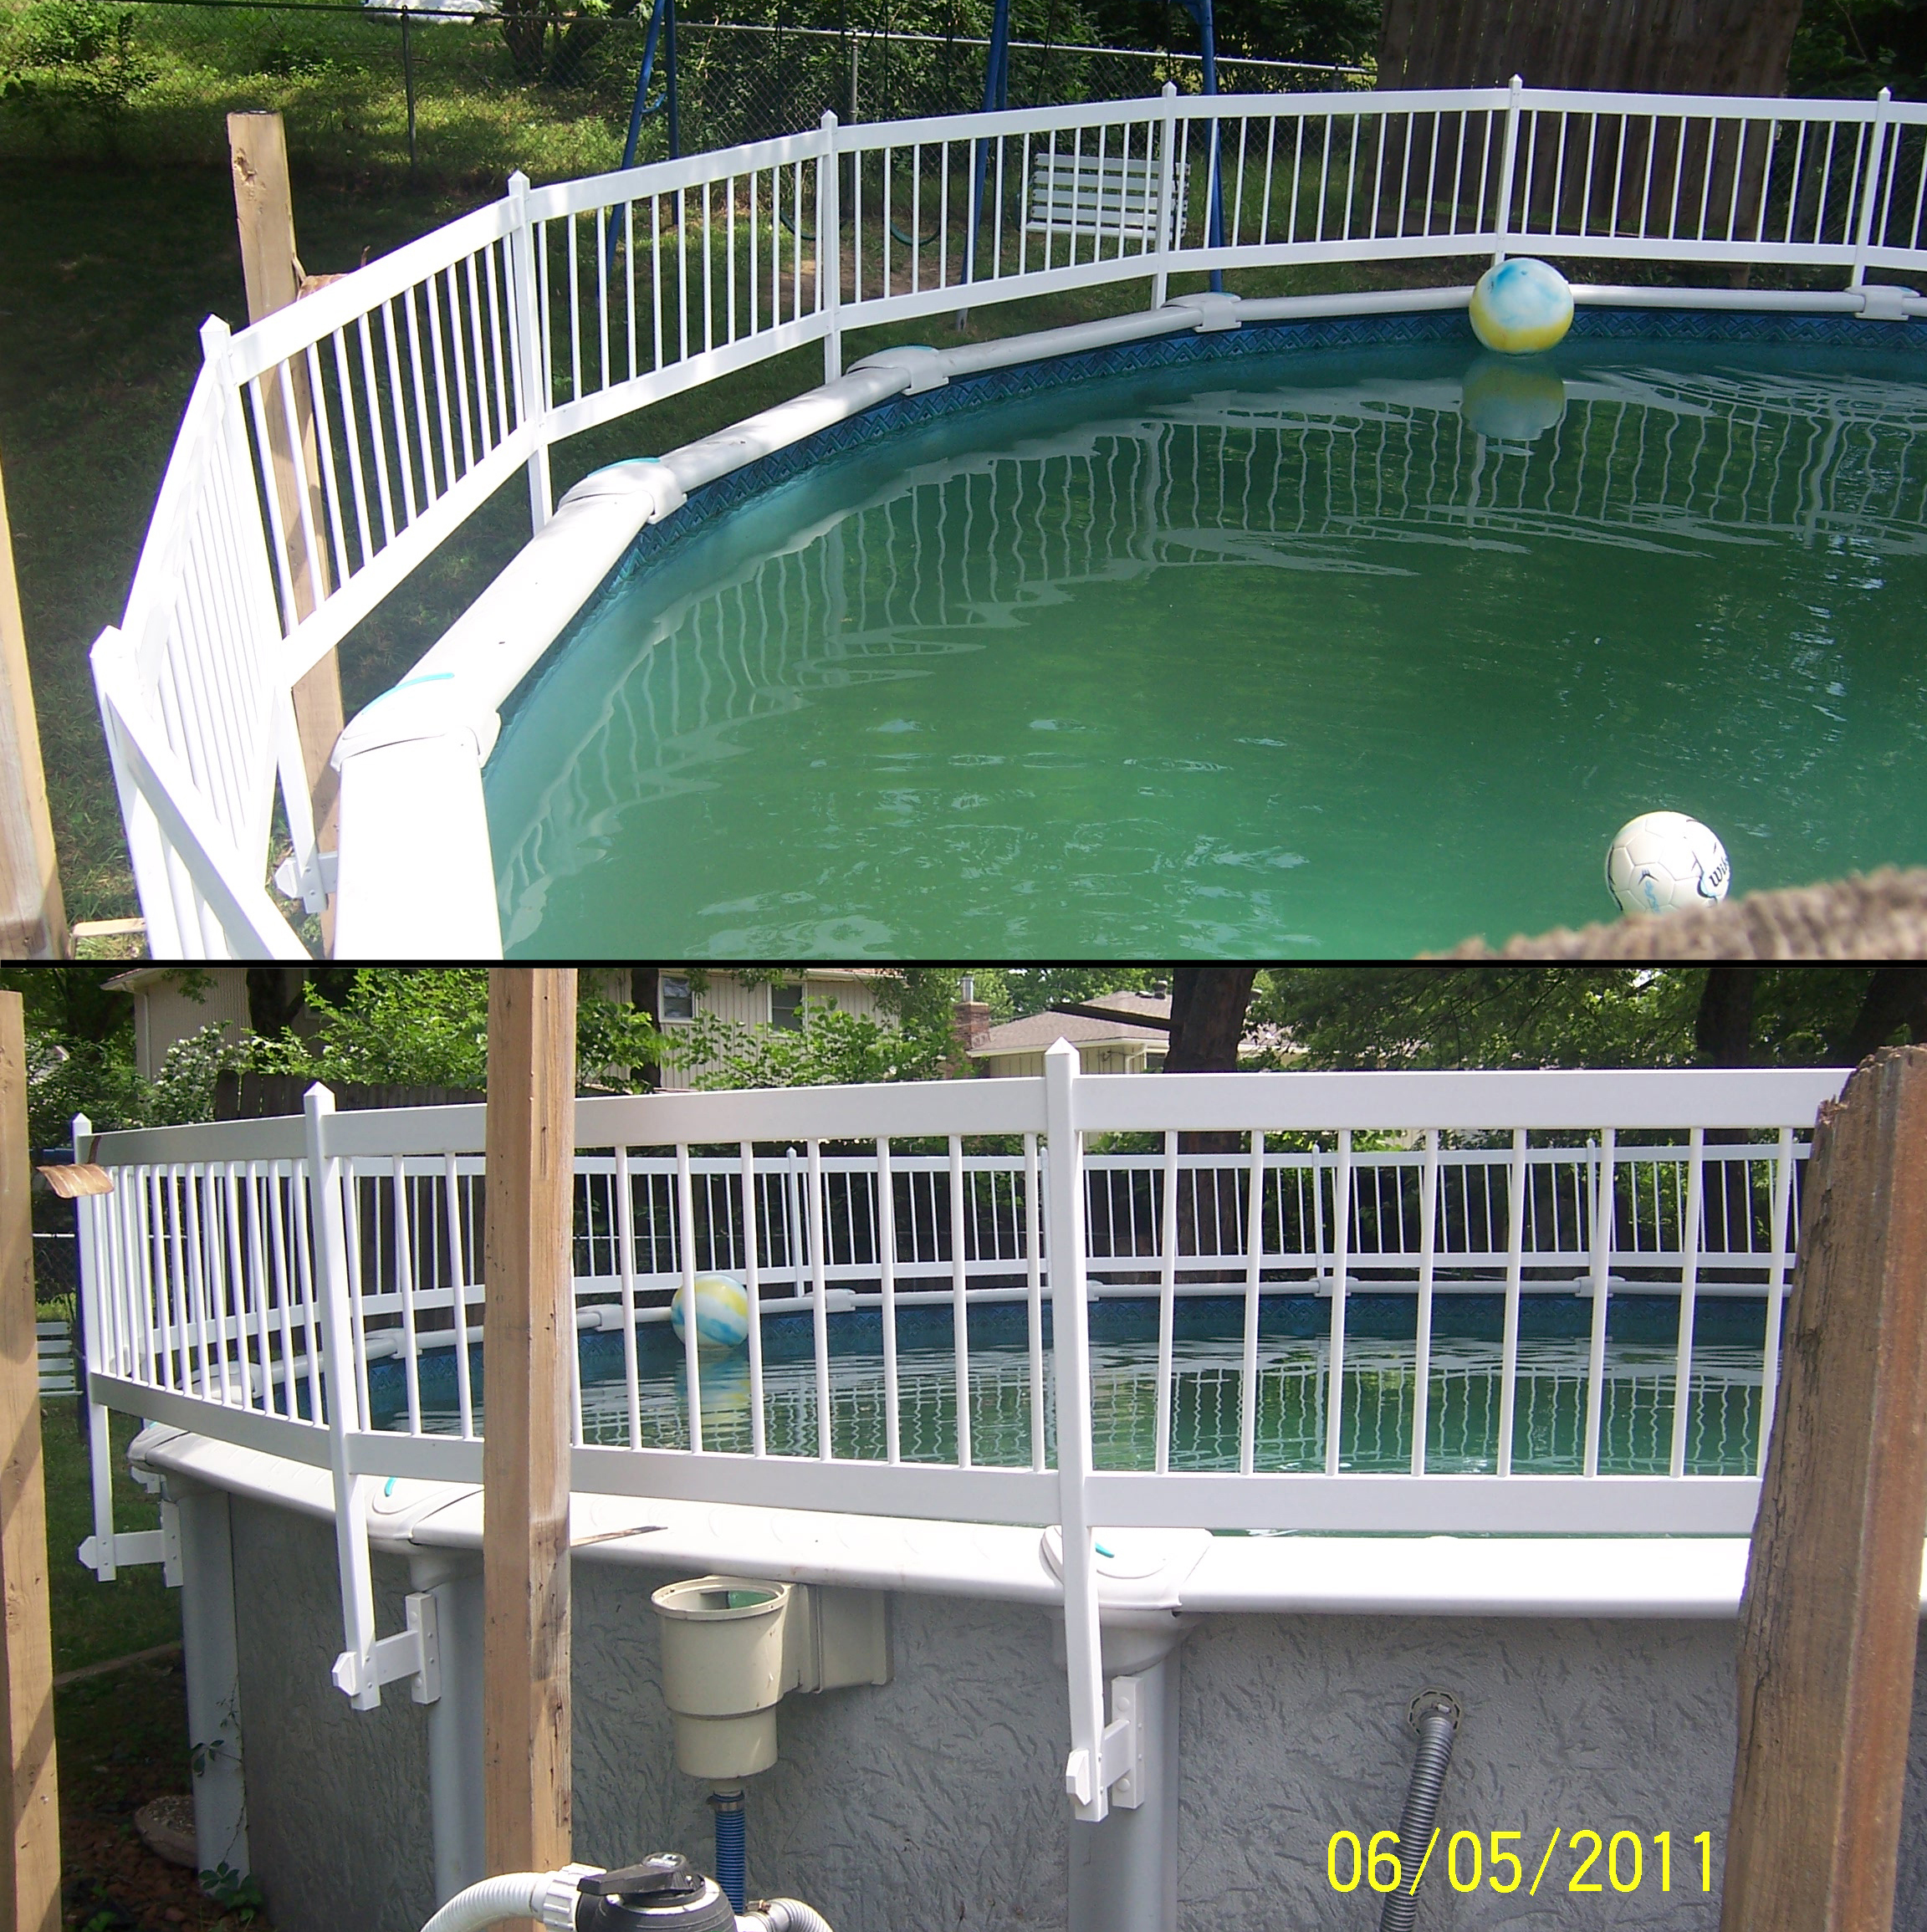 HERCULES FENCE COMPANY - SWIMMING POOLS - RESIDENTIAL AND COMMERCIAL